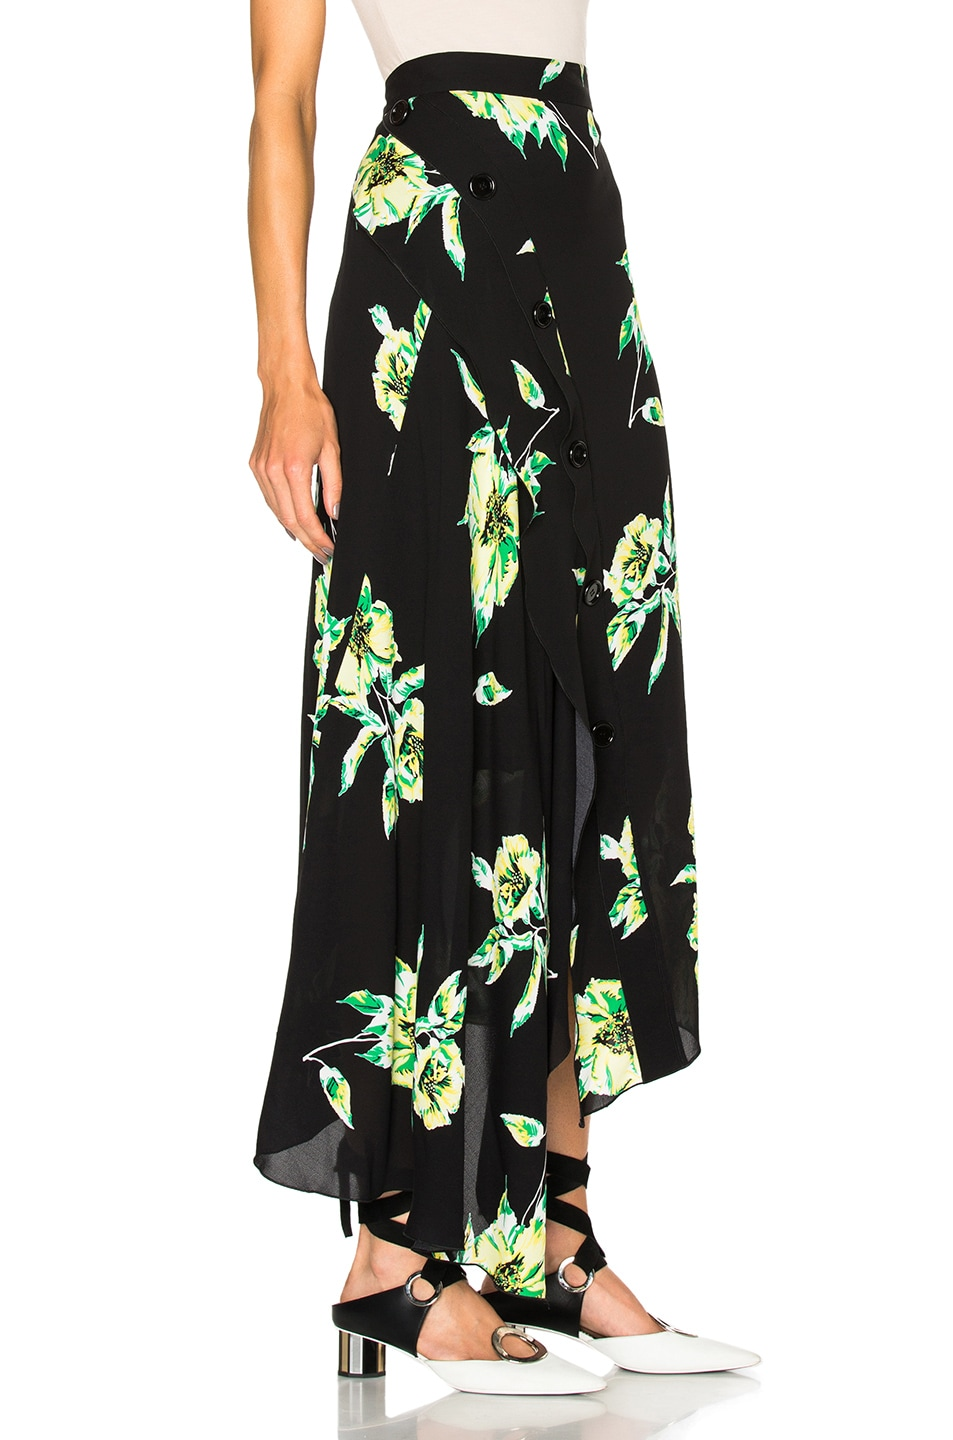 Quality Free Shipping Low Price Buy Cheap Clearance Store Proenza Schouler Printed Crepe Skirt Sale Extremely clApPt